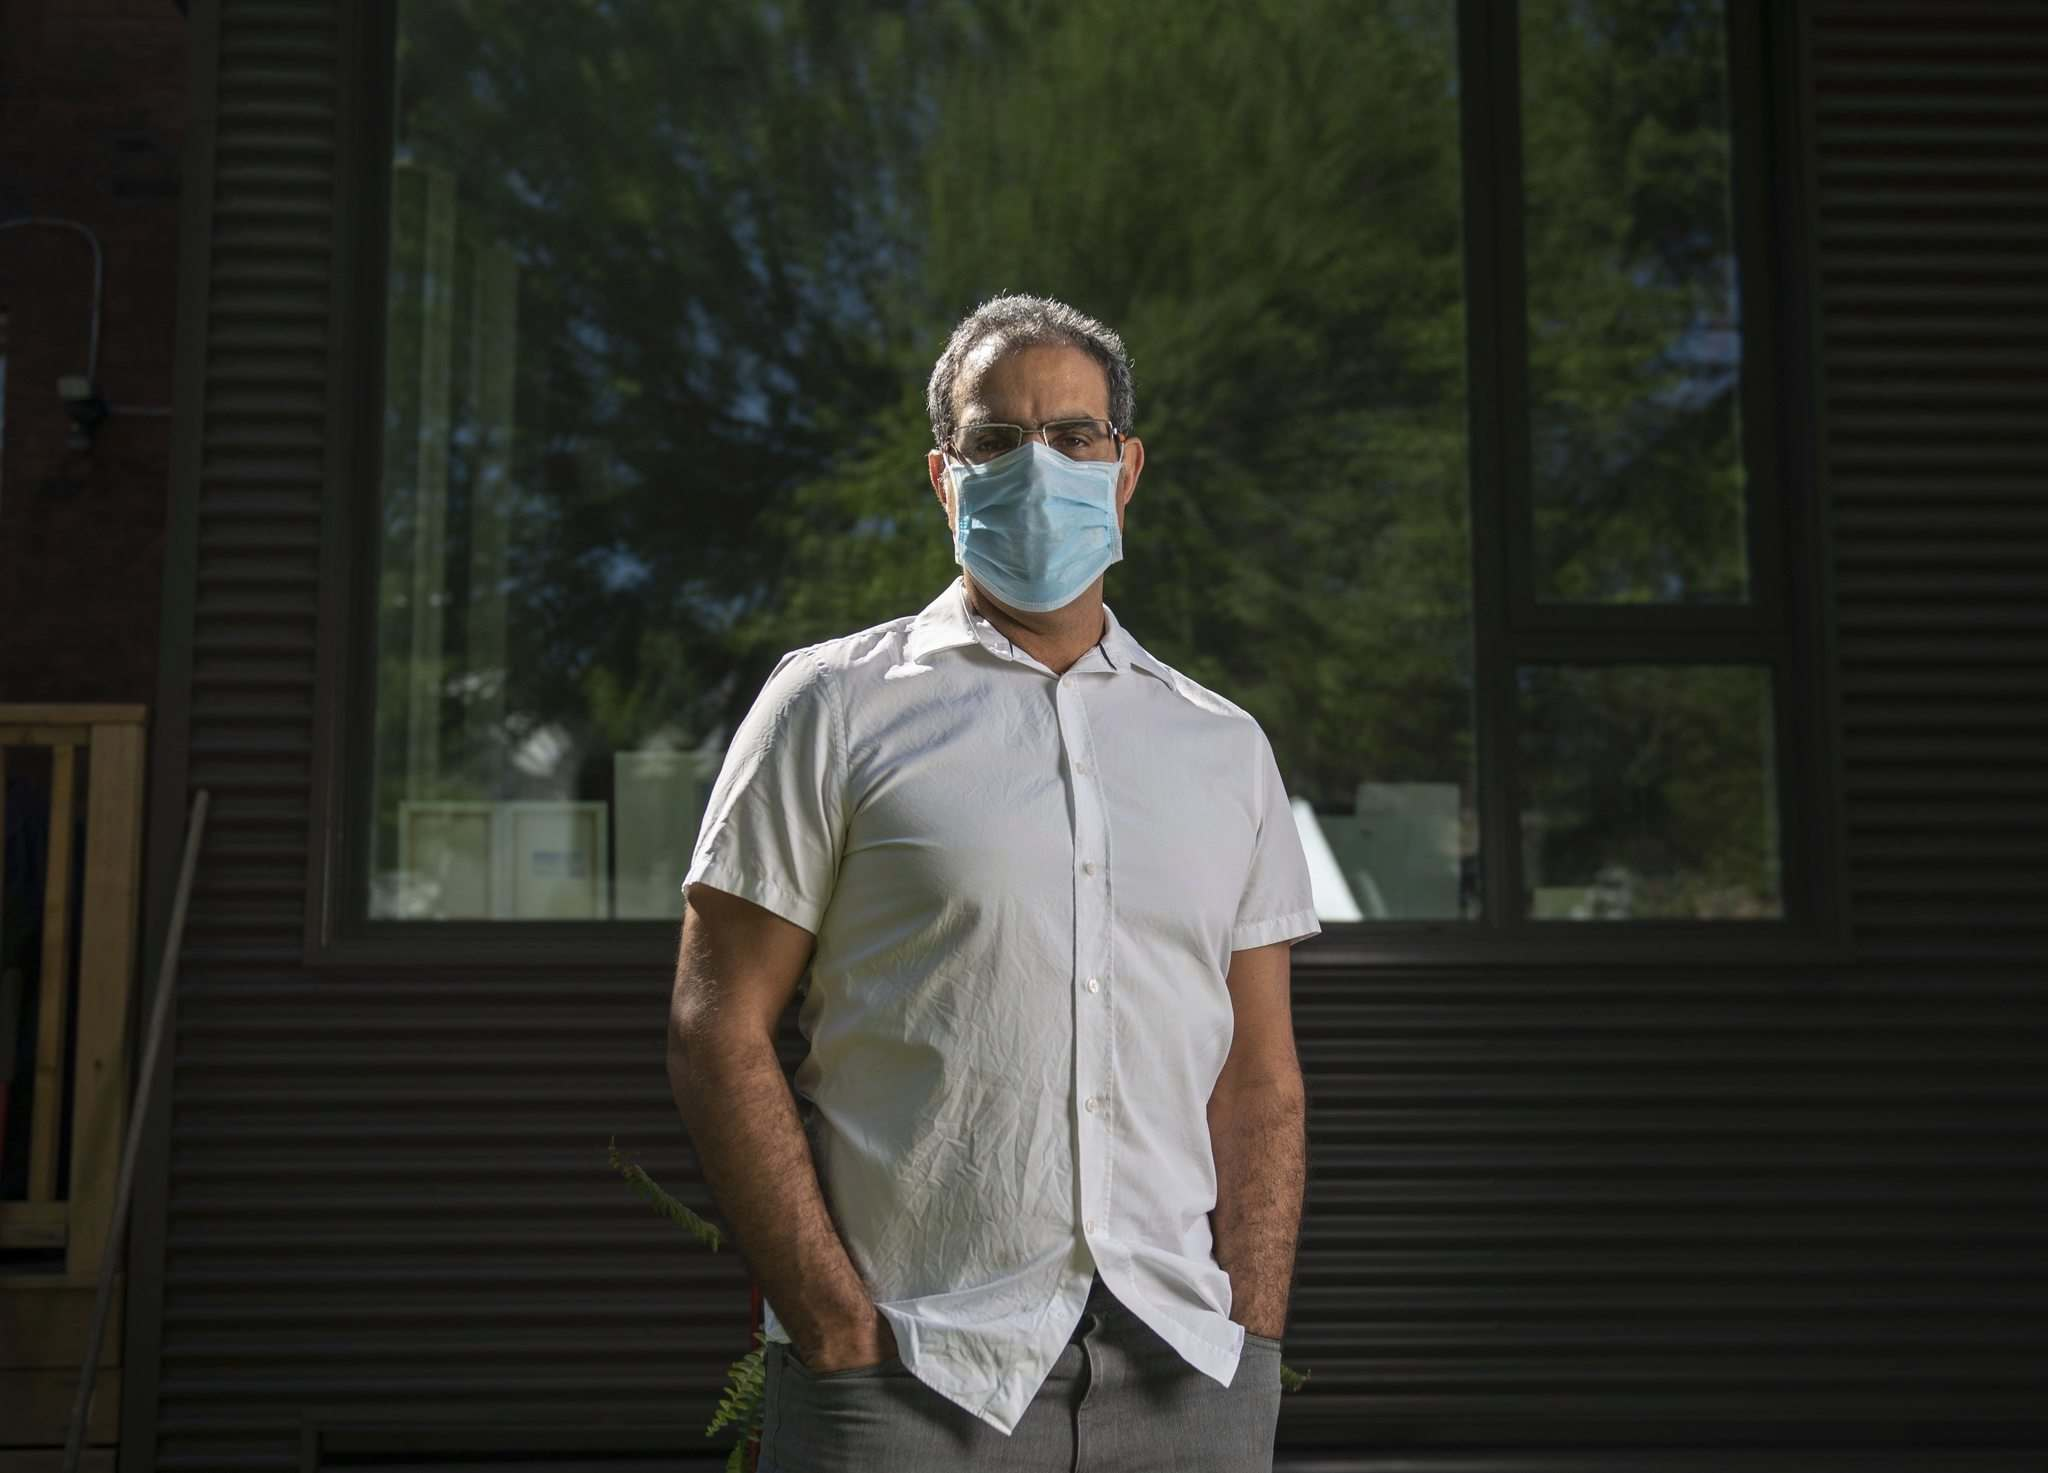 Providence Therapeutics is too far behind its vaccine development to ever catch up with current approved vaccines, says Amir Attaran, a professor in the faculties of law and the School of Epidemiology and Public Health at the University of Ottawa. (Justin Tang / Winnipeg Free Press)